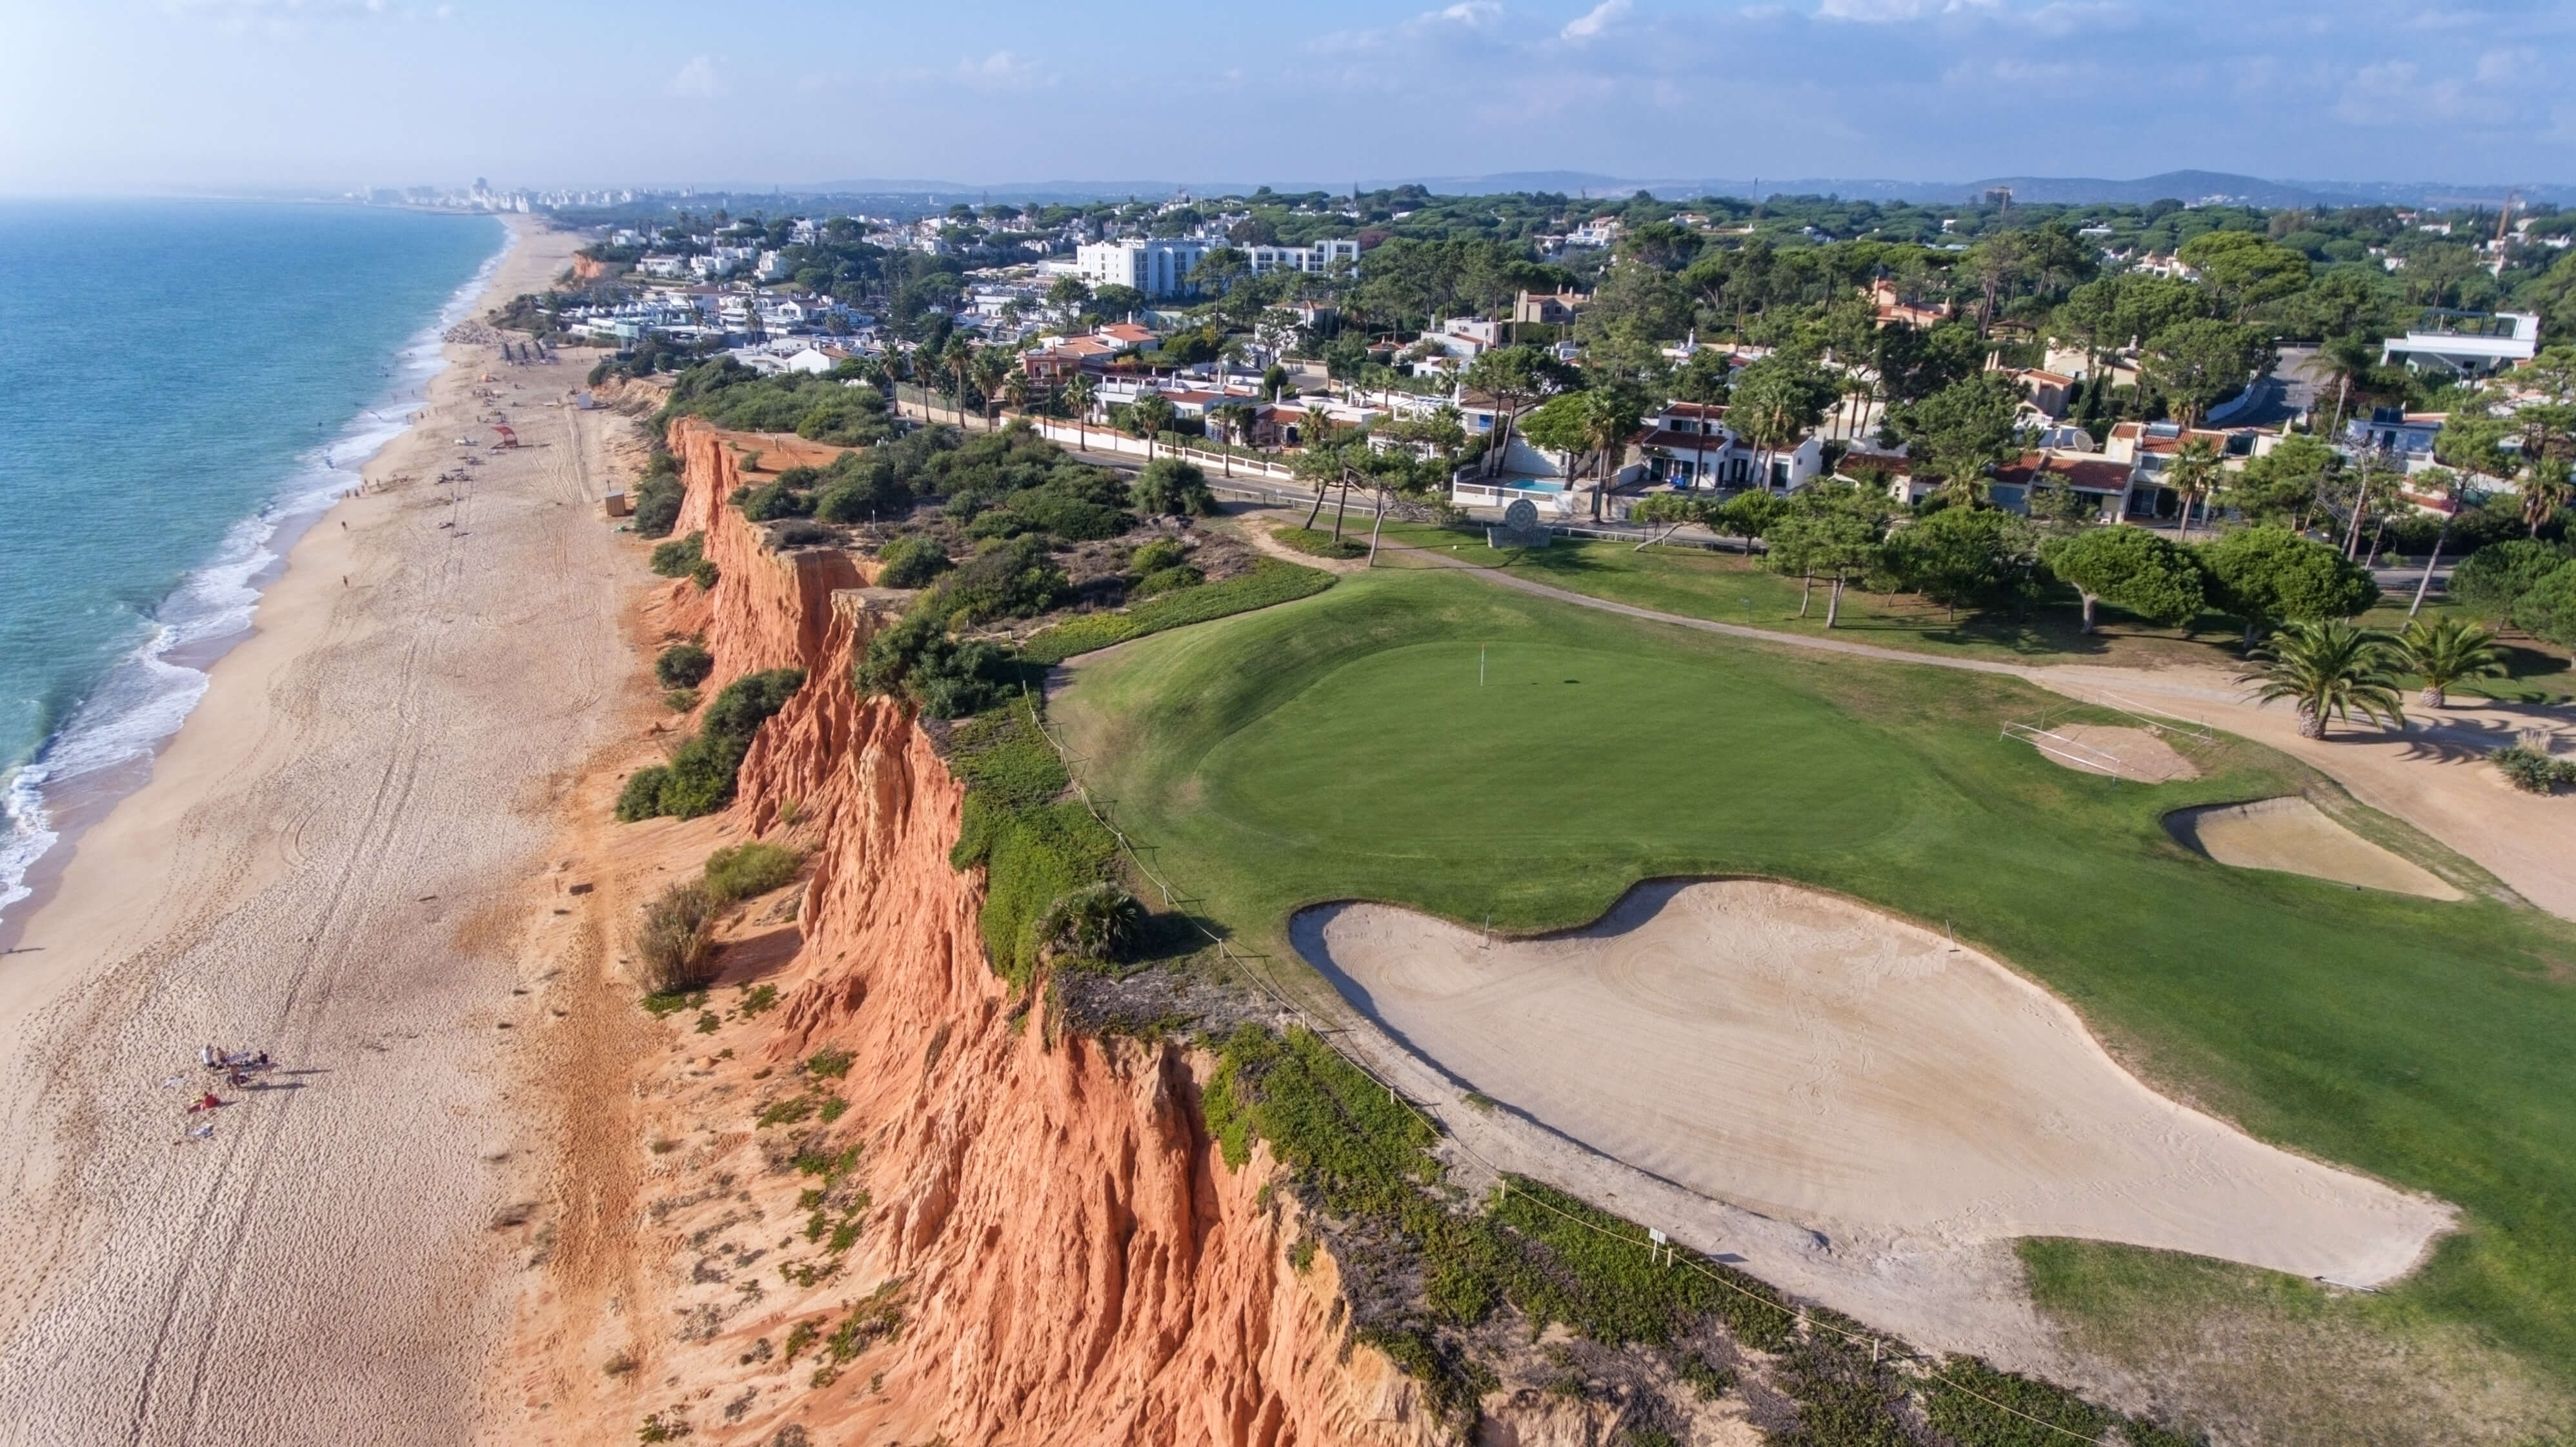 Why should you book golf in Portugal this summer?